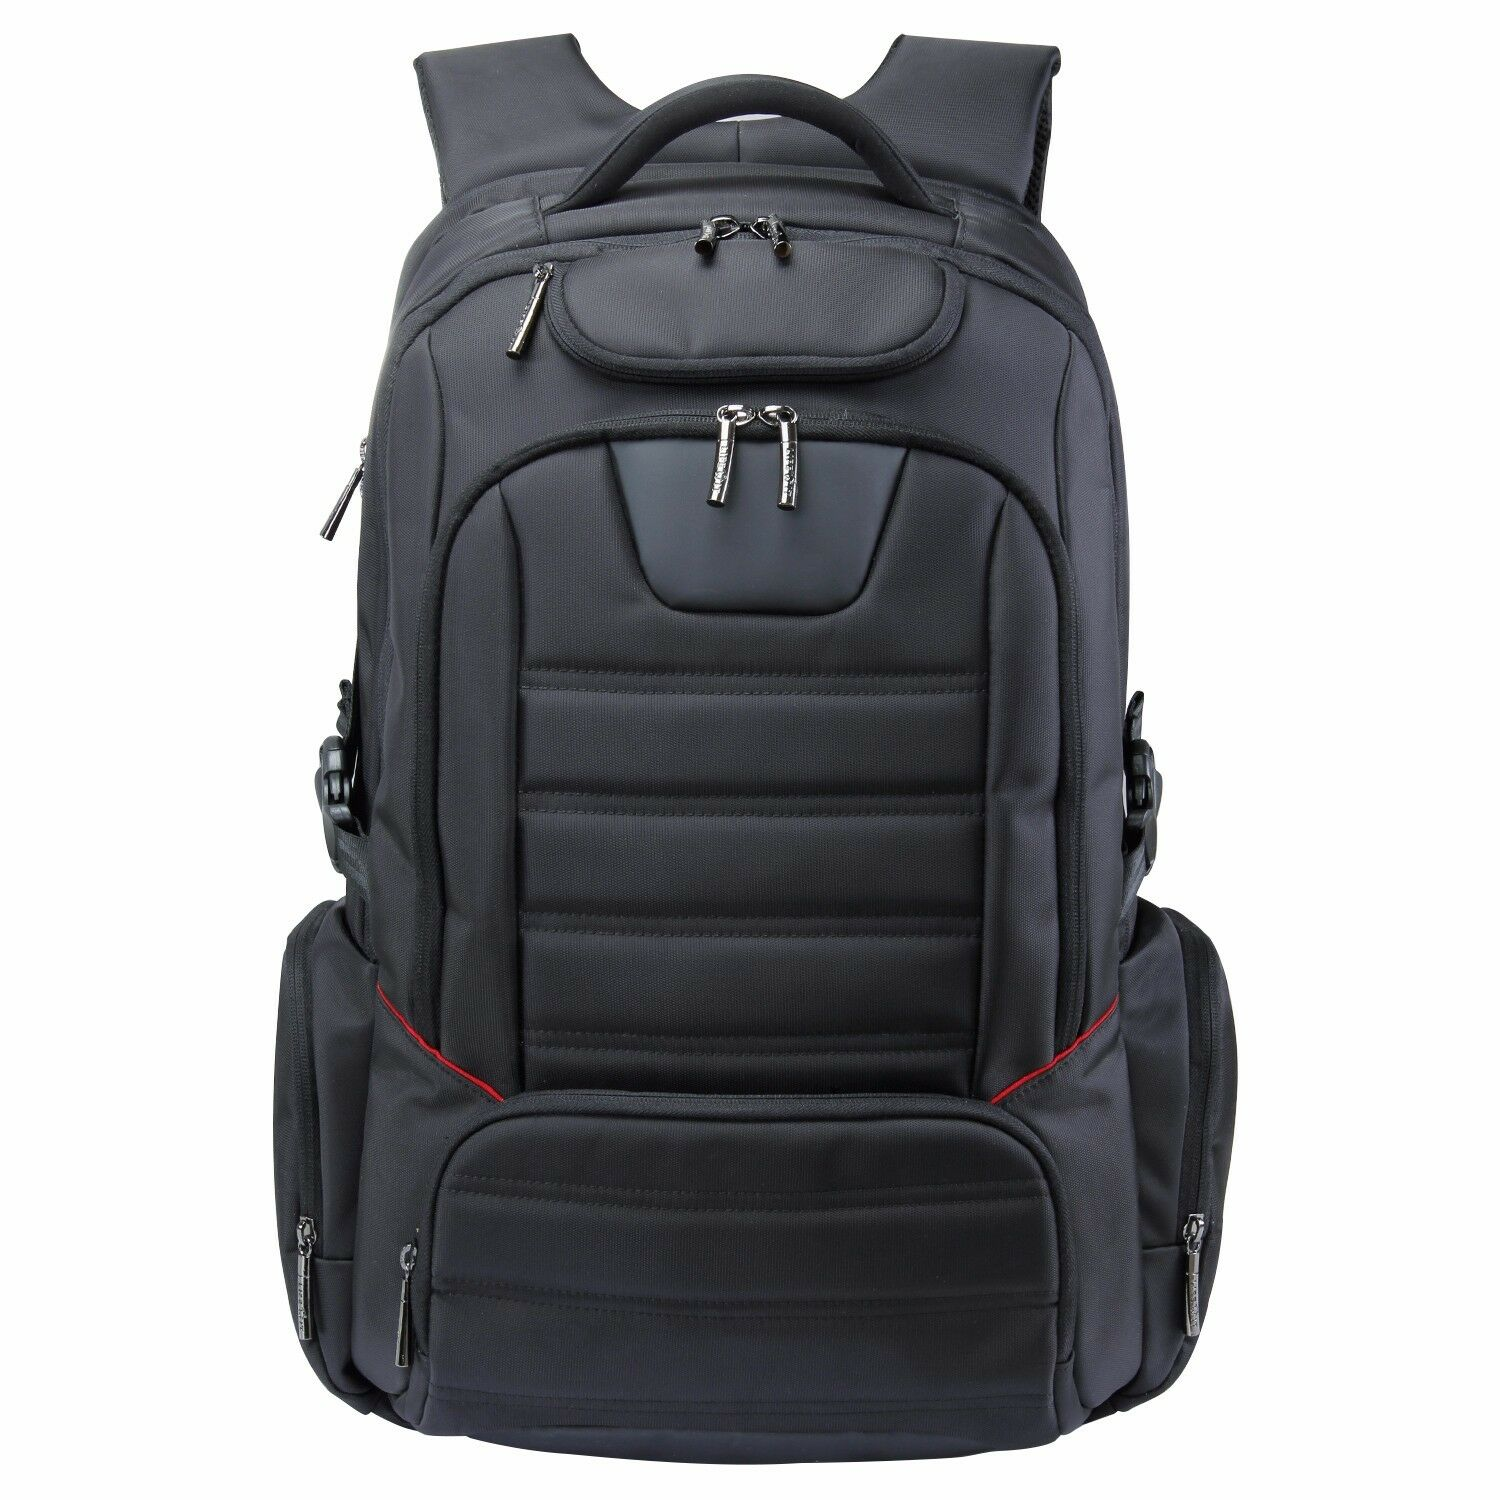 "Lifewit 18"" Men Large Laptop Backpack Travel Business Comput"